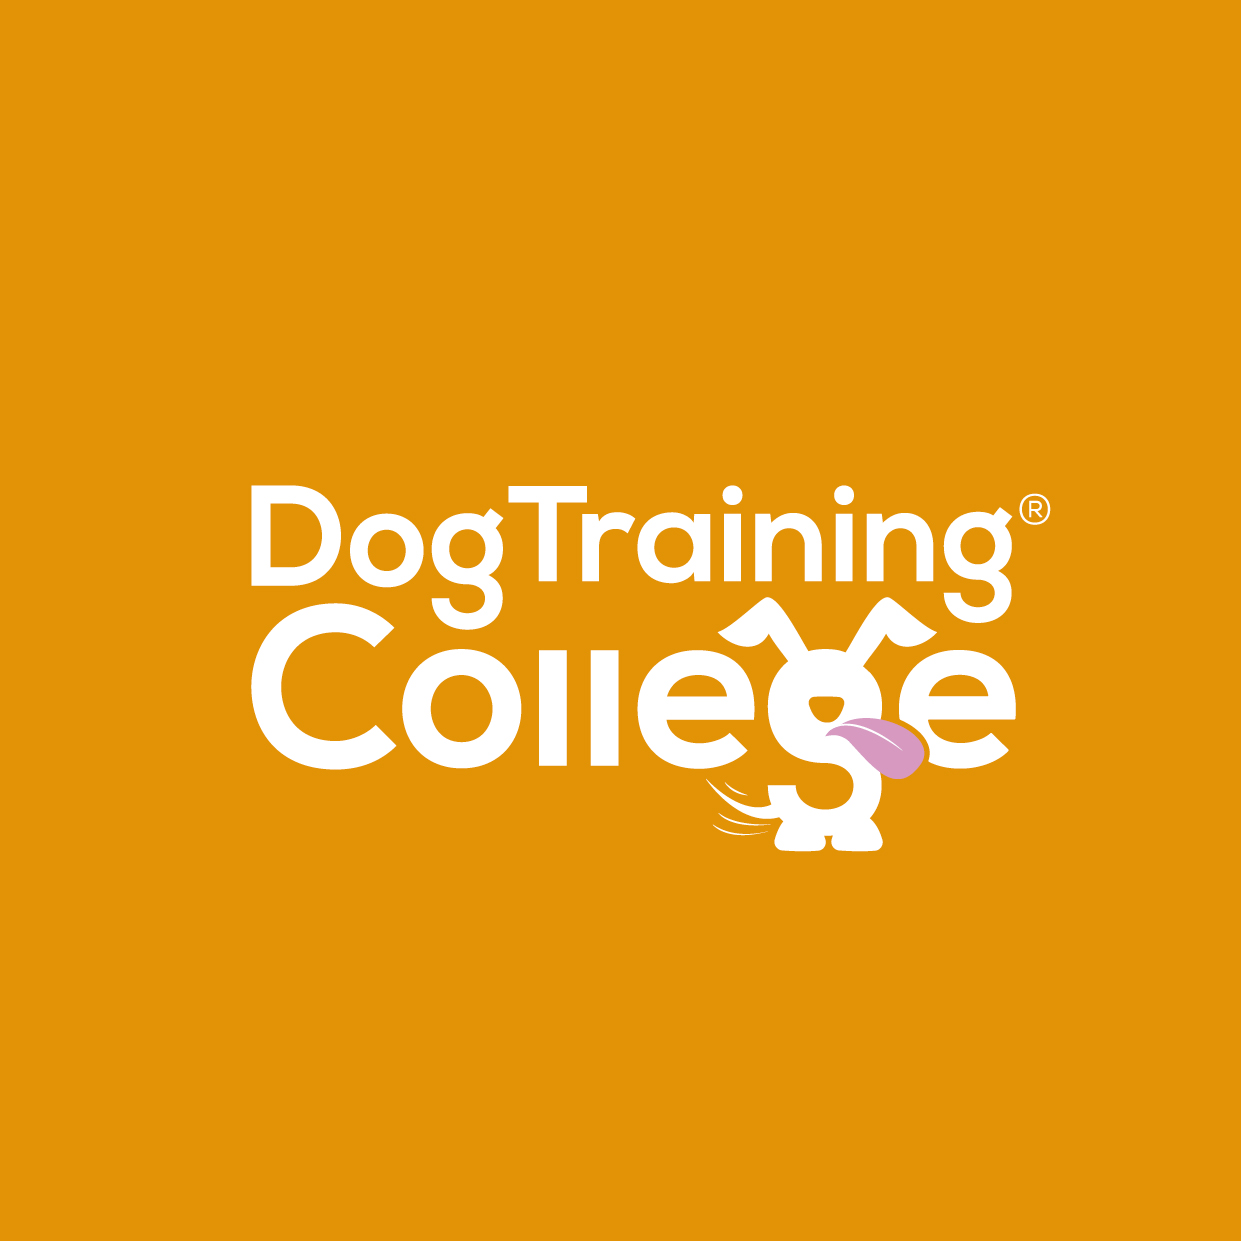 Dog Training College Brand Guidelines 2019-05.jpg